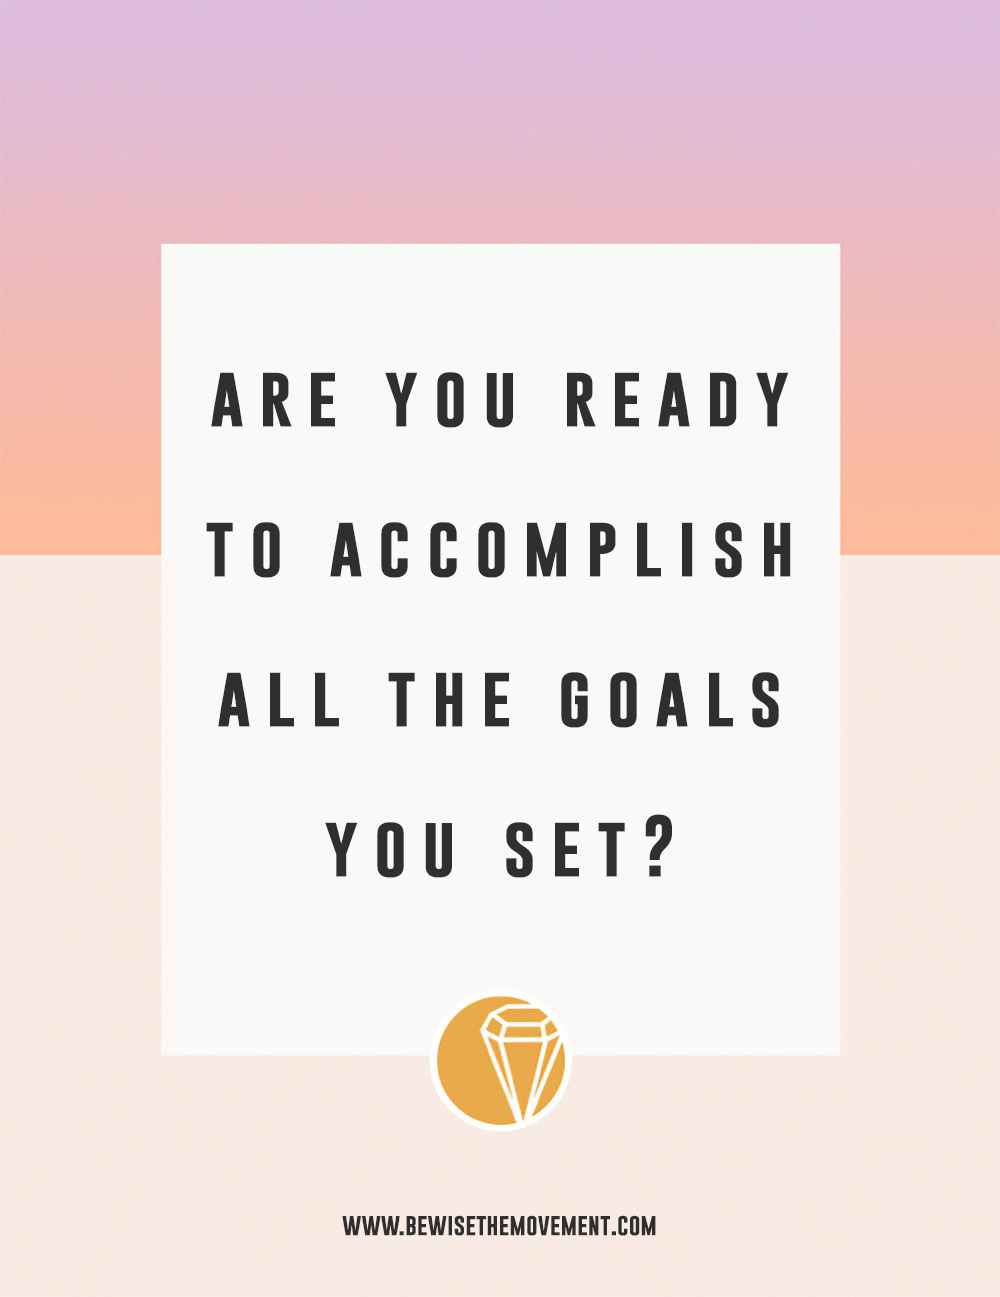 Are you ready to accomplish all the goals you set?